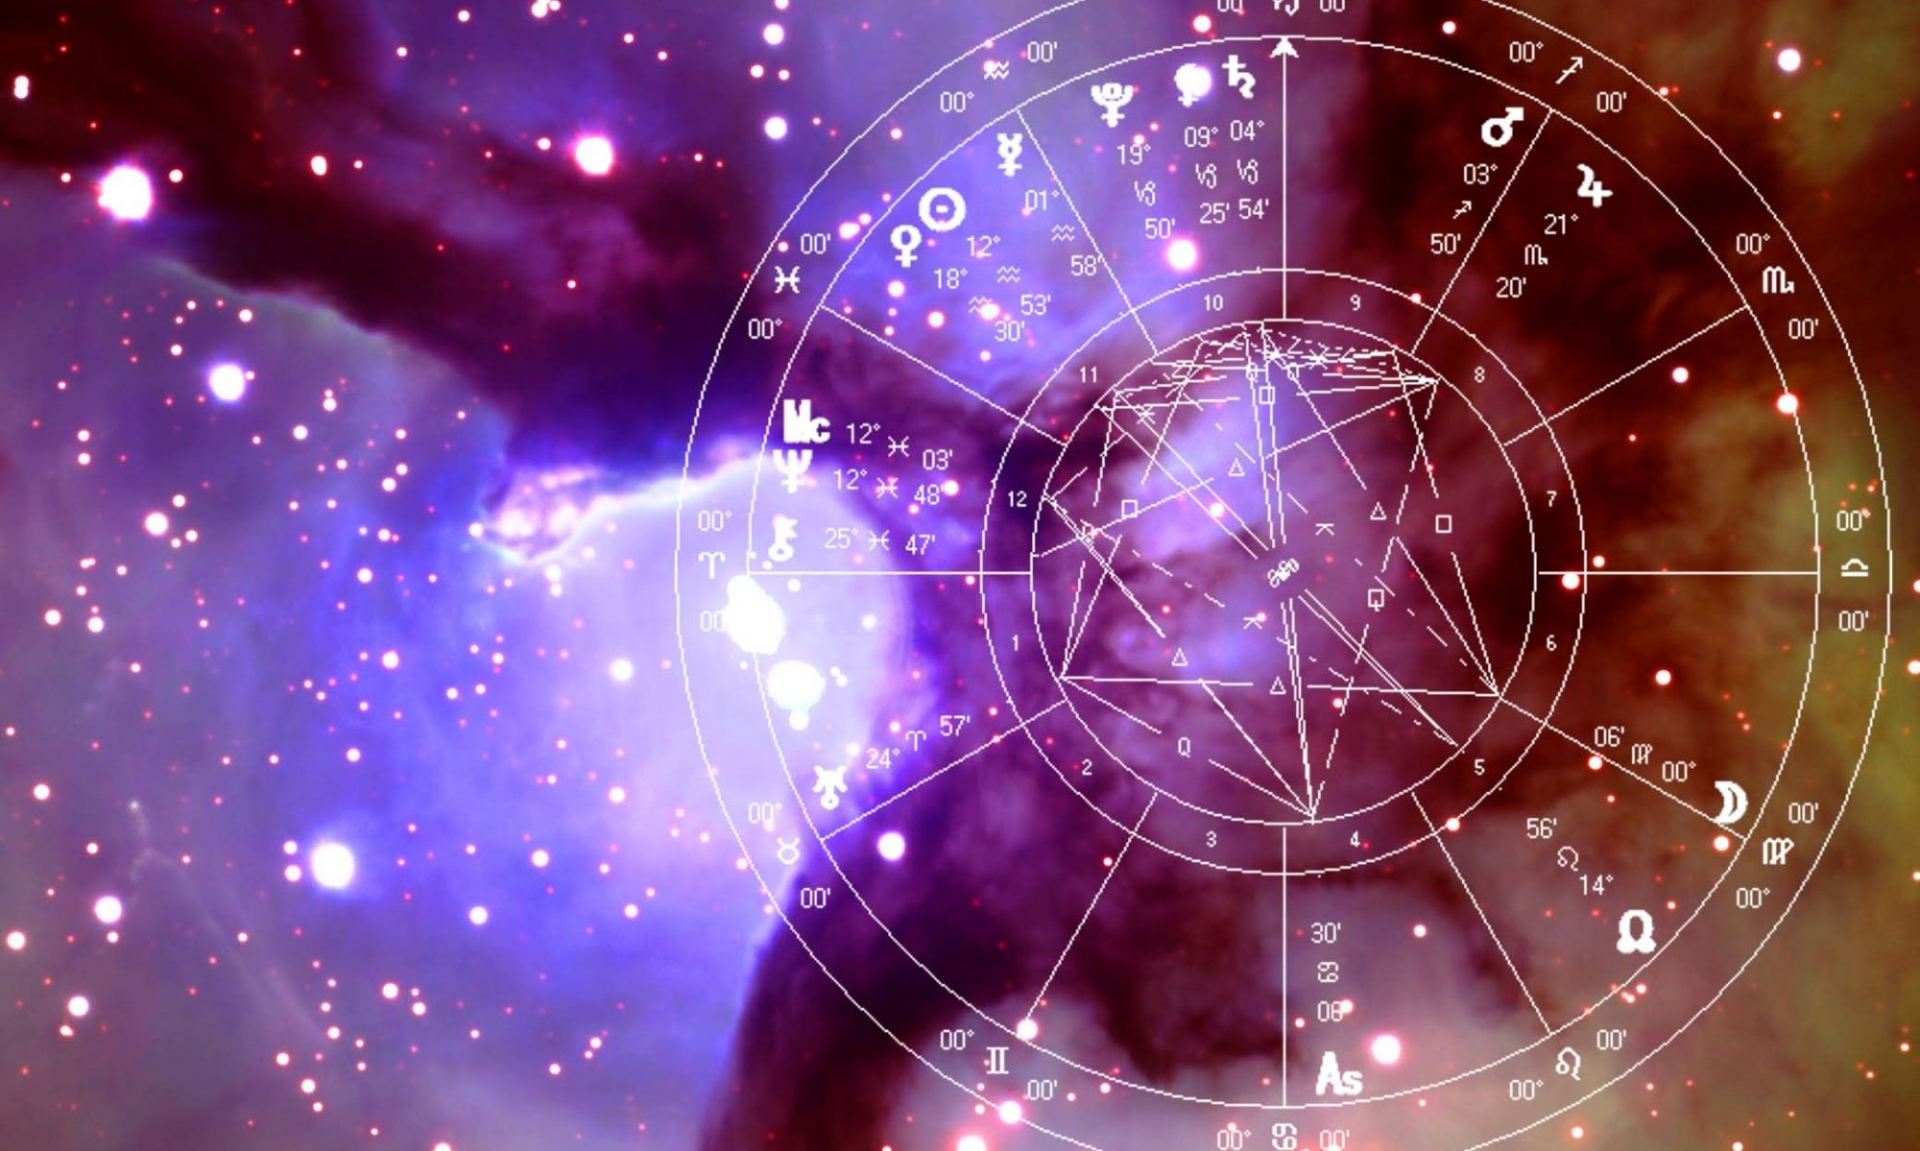 daily horoscope for march 26 astrological prediction for zodiac signs